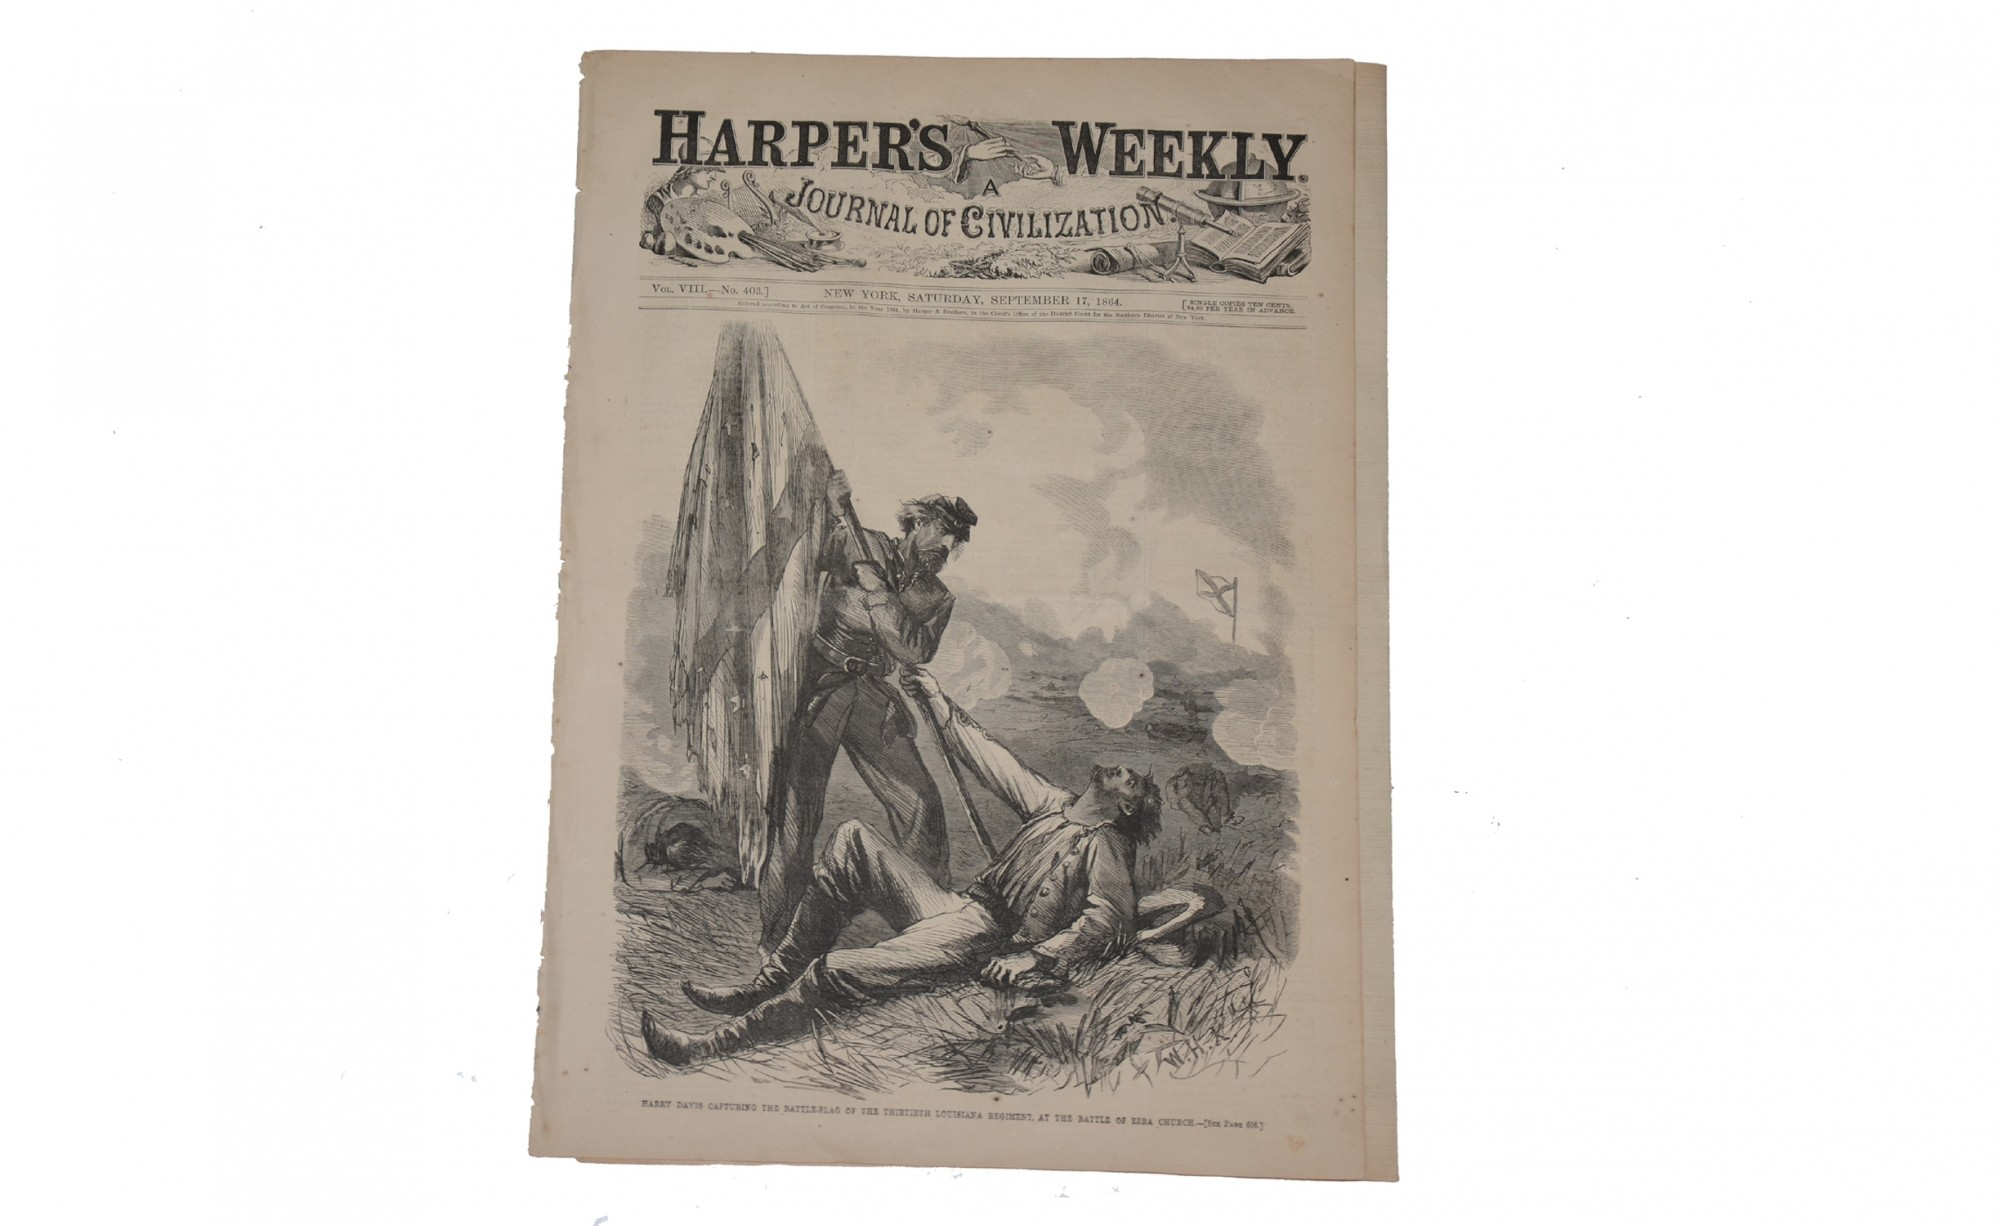 HARPER'S WEEKLY, NEW YORK, SEPTEMBER 17, 1864 – ATLANTA CAMPAIGN, MOBILE BAY